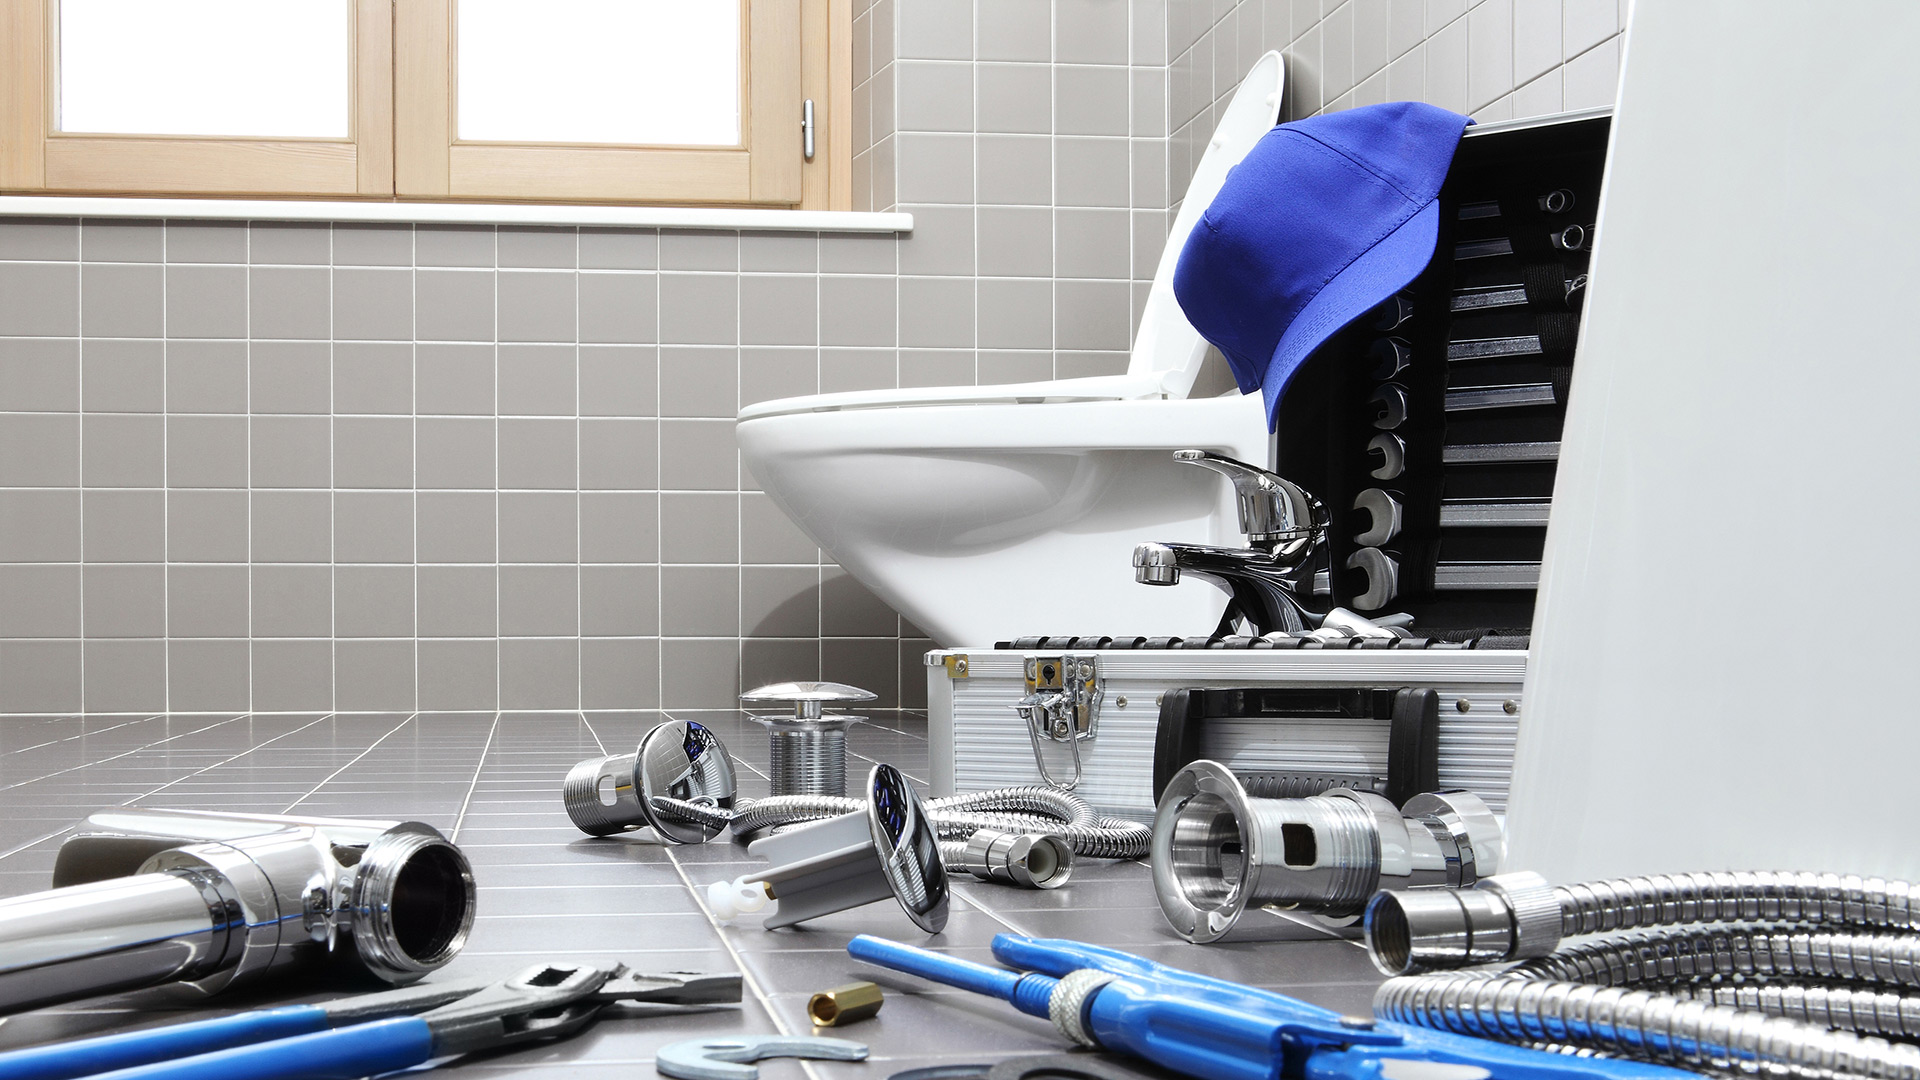 How-To-Install-A-Plumbing-System-For-Toilets.jpg